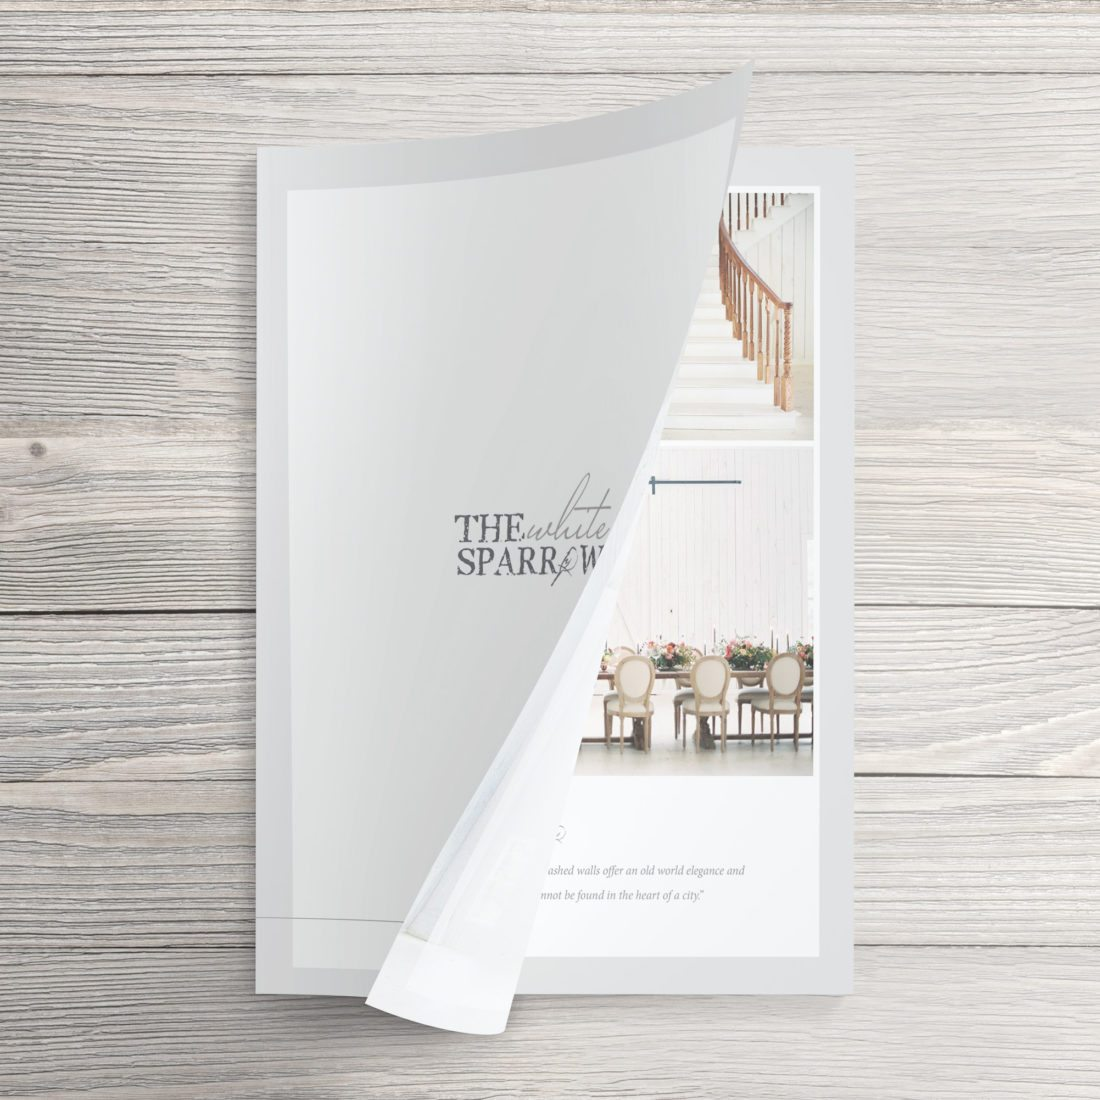 Dallas Branding Design | Media Kit for The White Sparrow Barn